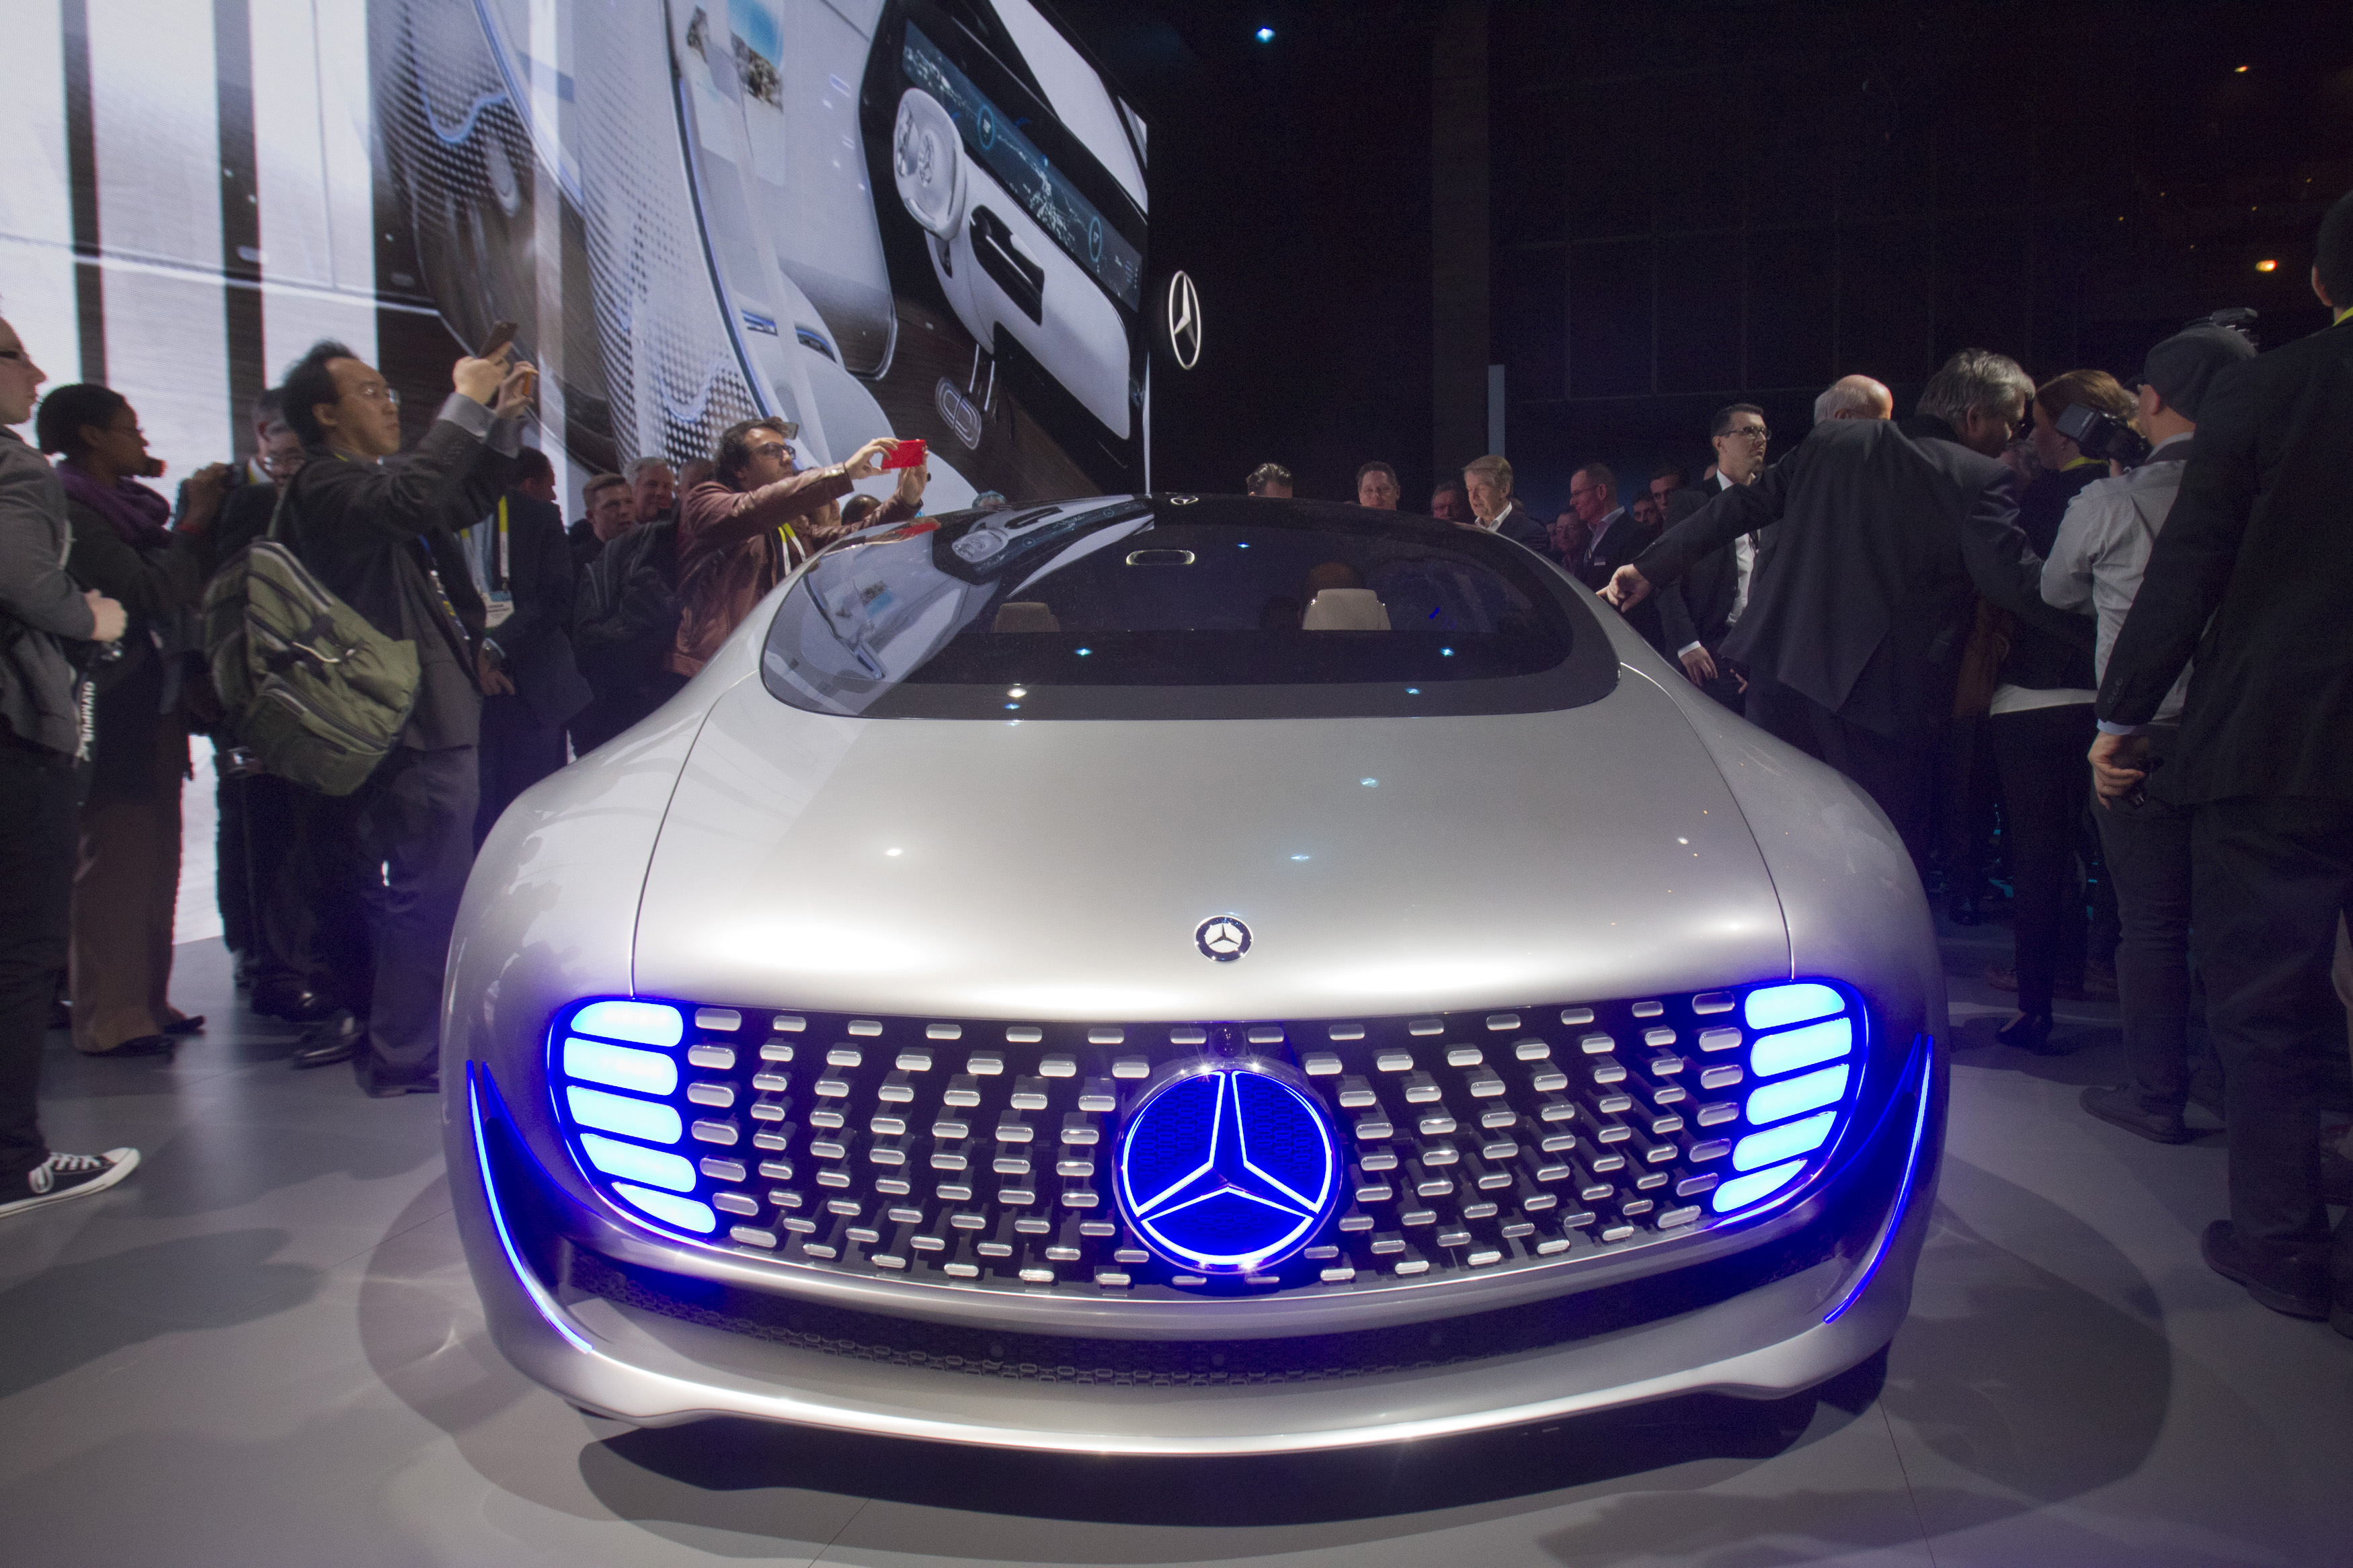 Journalist surround the Mercedes-Benz F015 Luxury in Motion autonomous concept car after it was unveiled during the 2015 International Consumer Electronics Show in Las Vegas